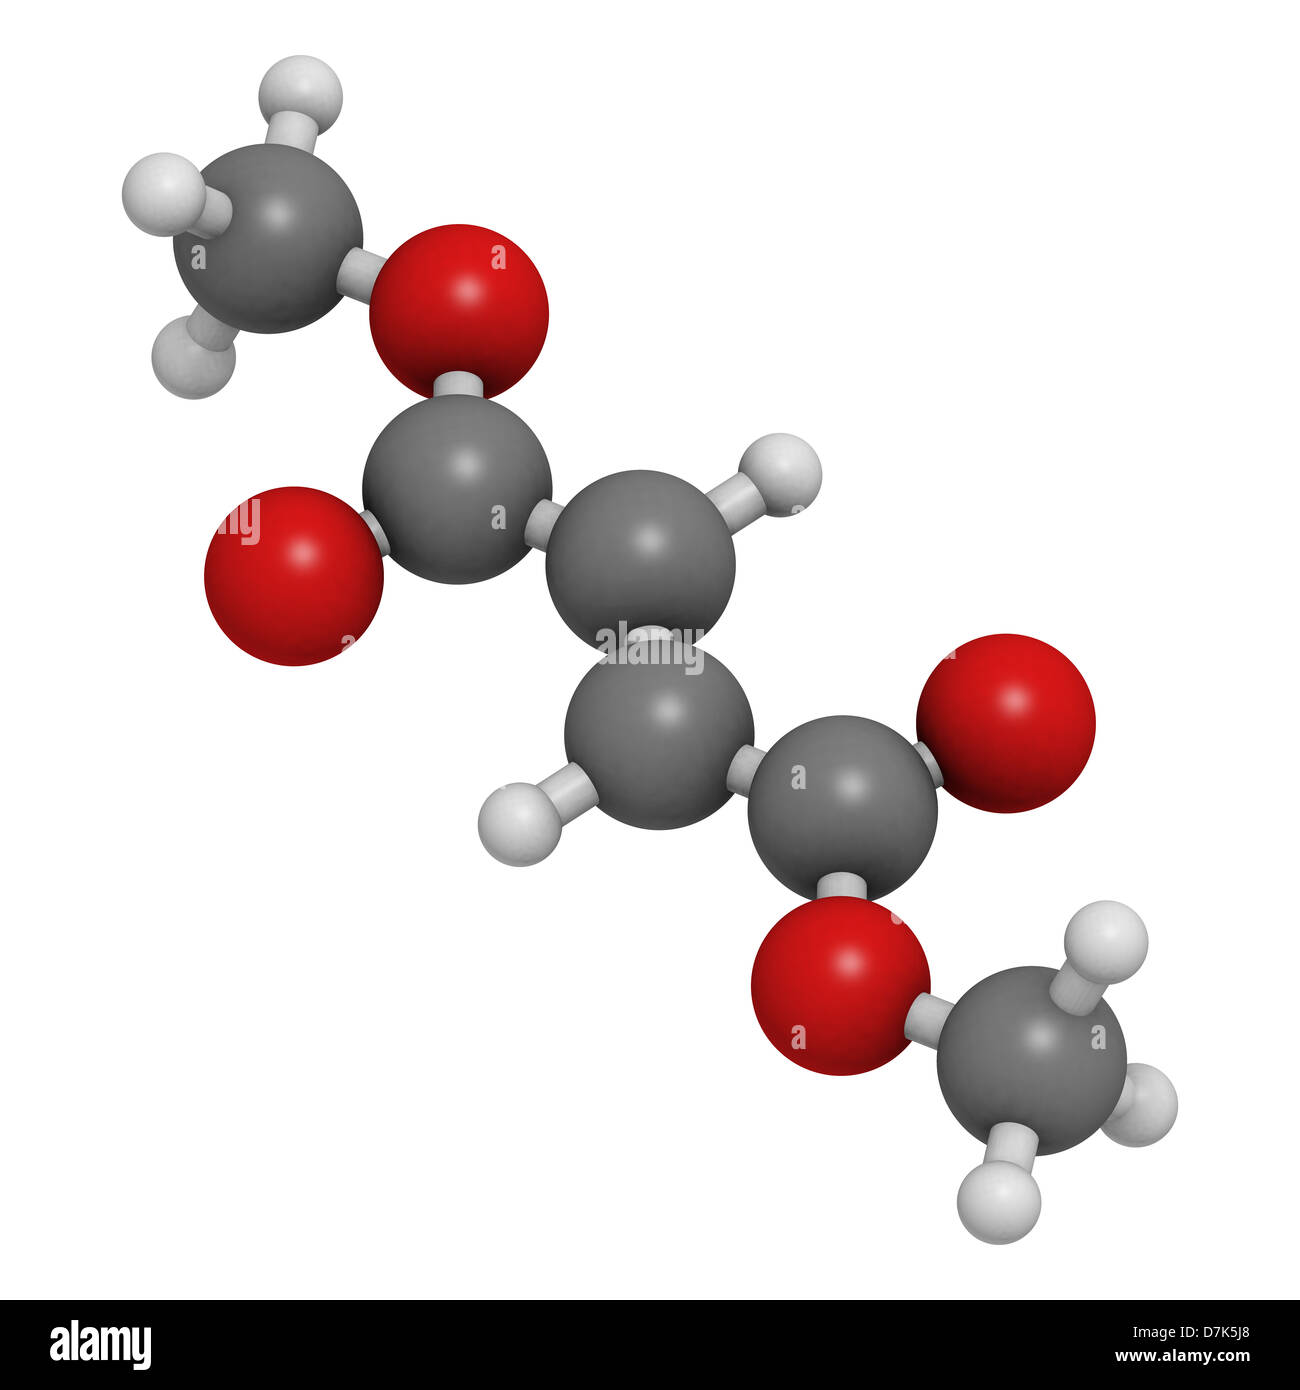 Dimethyl fumarate (DMF) multiple sclerosis and psoriasis drug, molecular model. Atoms are represented as spheres. - Stock Image